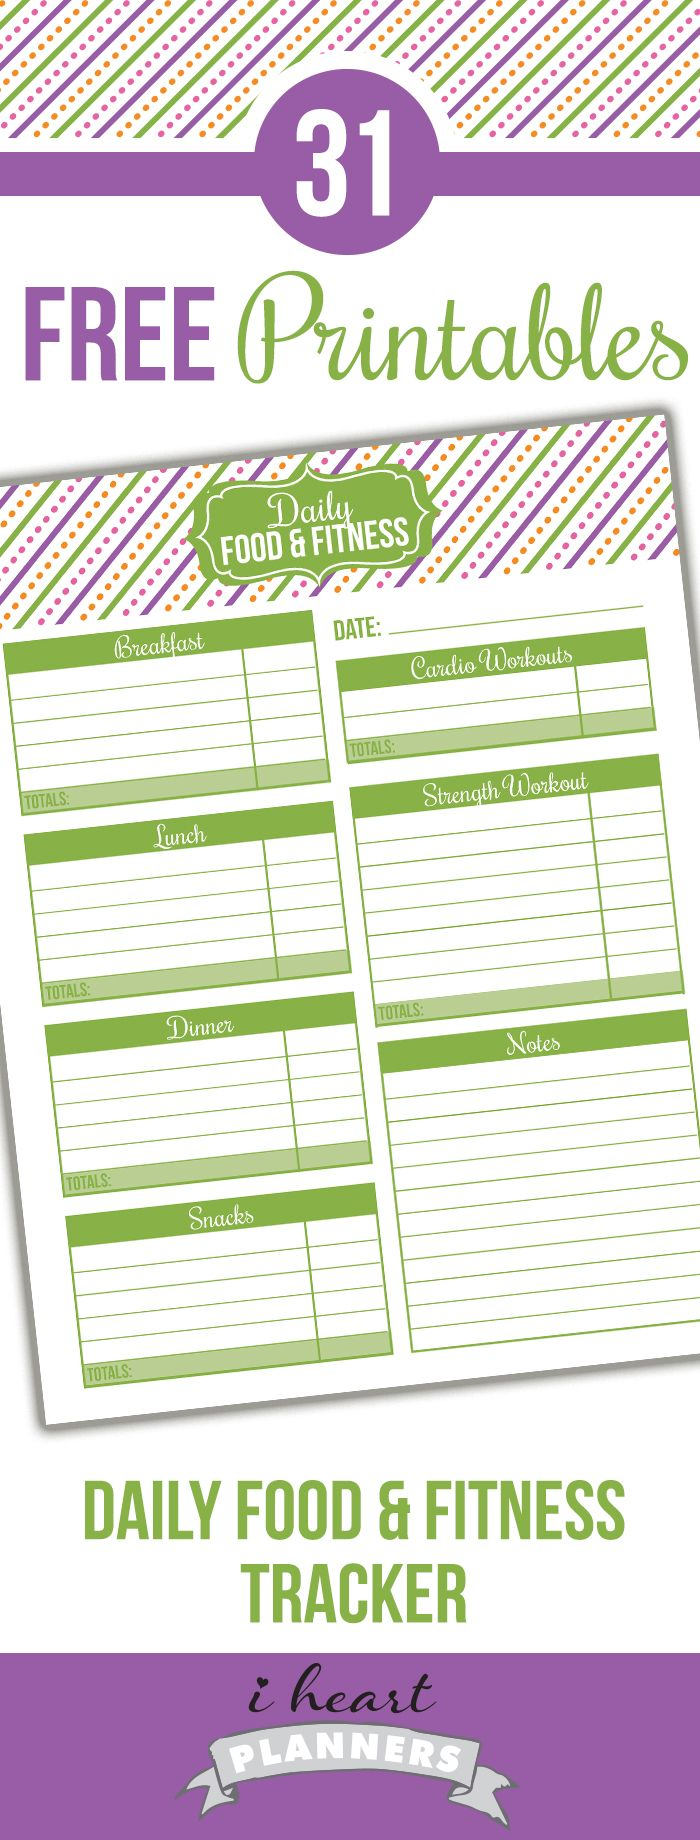 363 best Printables images on Pinterest | Happy planner, Organizers ...